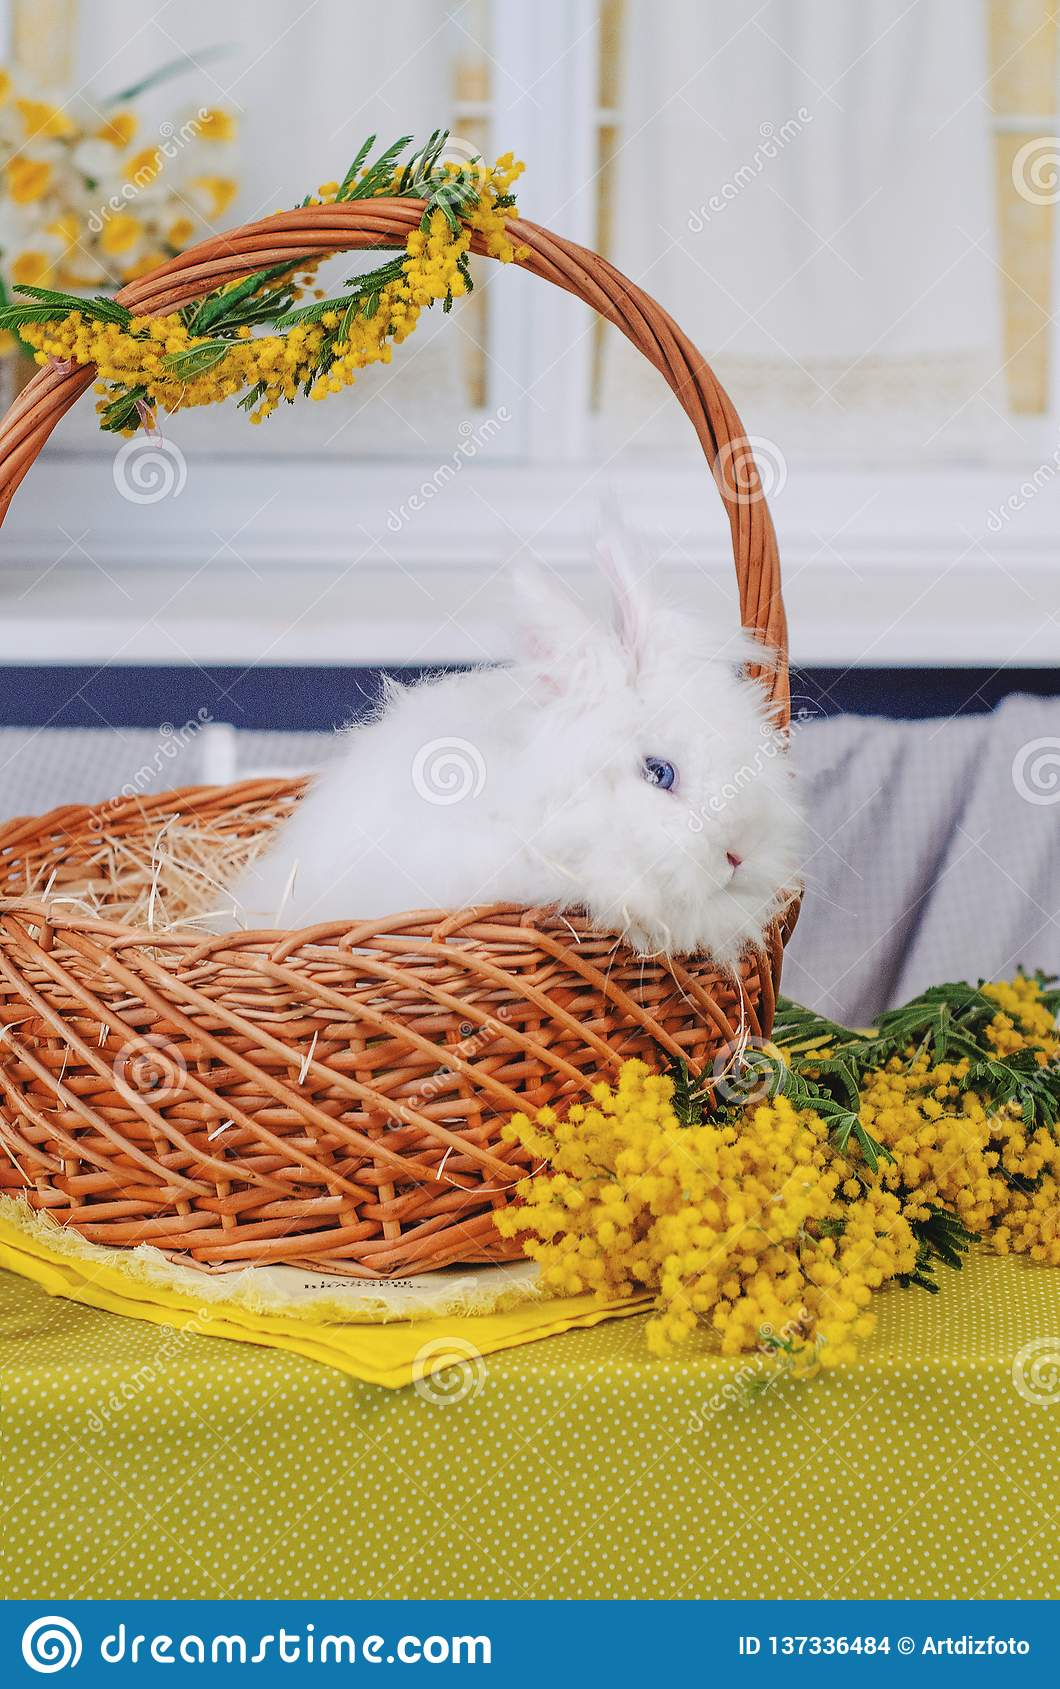 Cute baby bunniy sitting in a wooden basket on the table with flowers